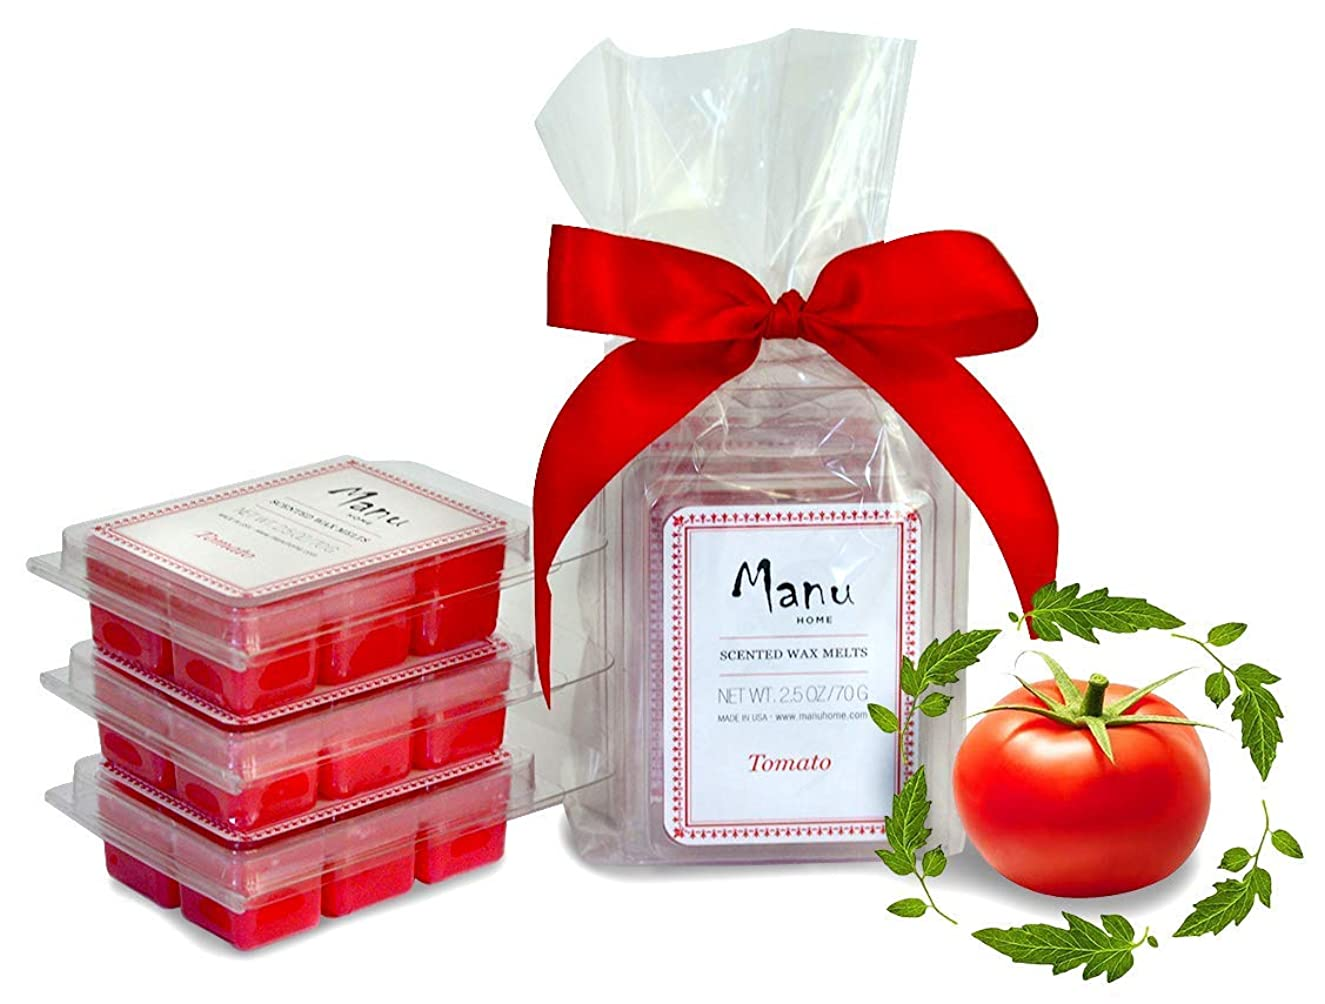 Manu Home 7.5 oz Tomato Vine Scented Wax Melts ~ 3-Pack ~ 50+ Hours of Fragrance When Wax Cubes are Melted in Scentsy or Standard Electric Warmer. Aromatherapy Oils ~ Made in USA